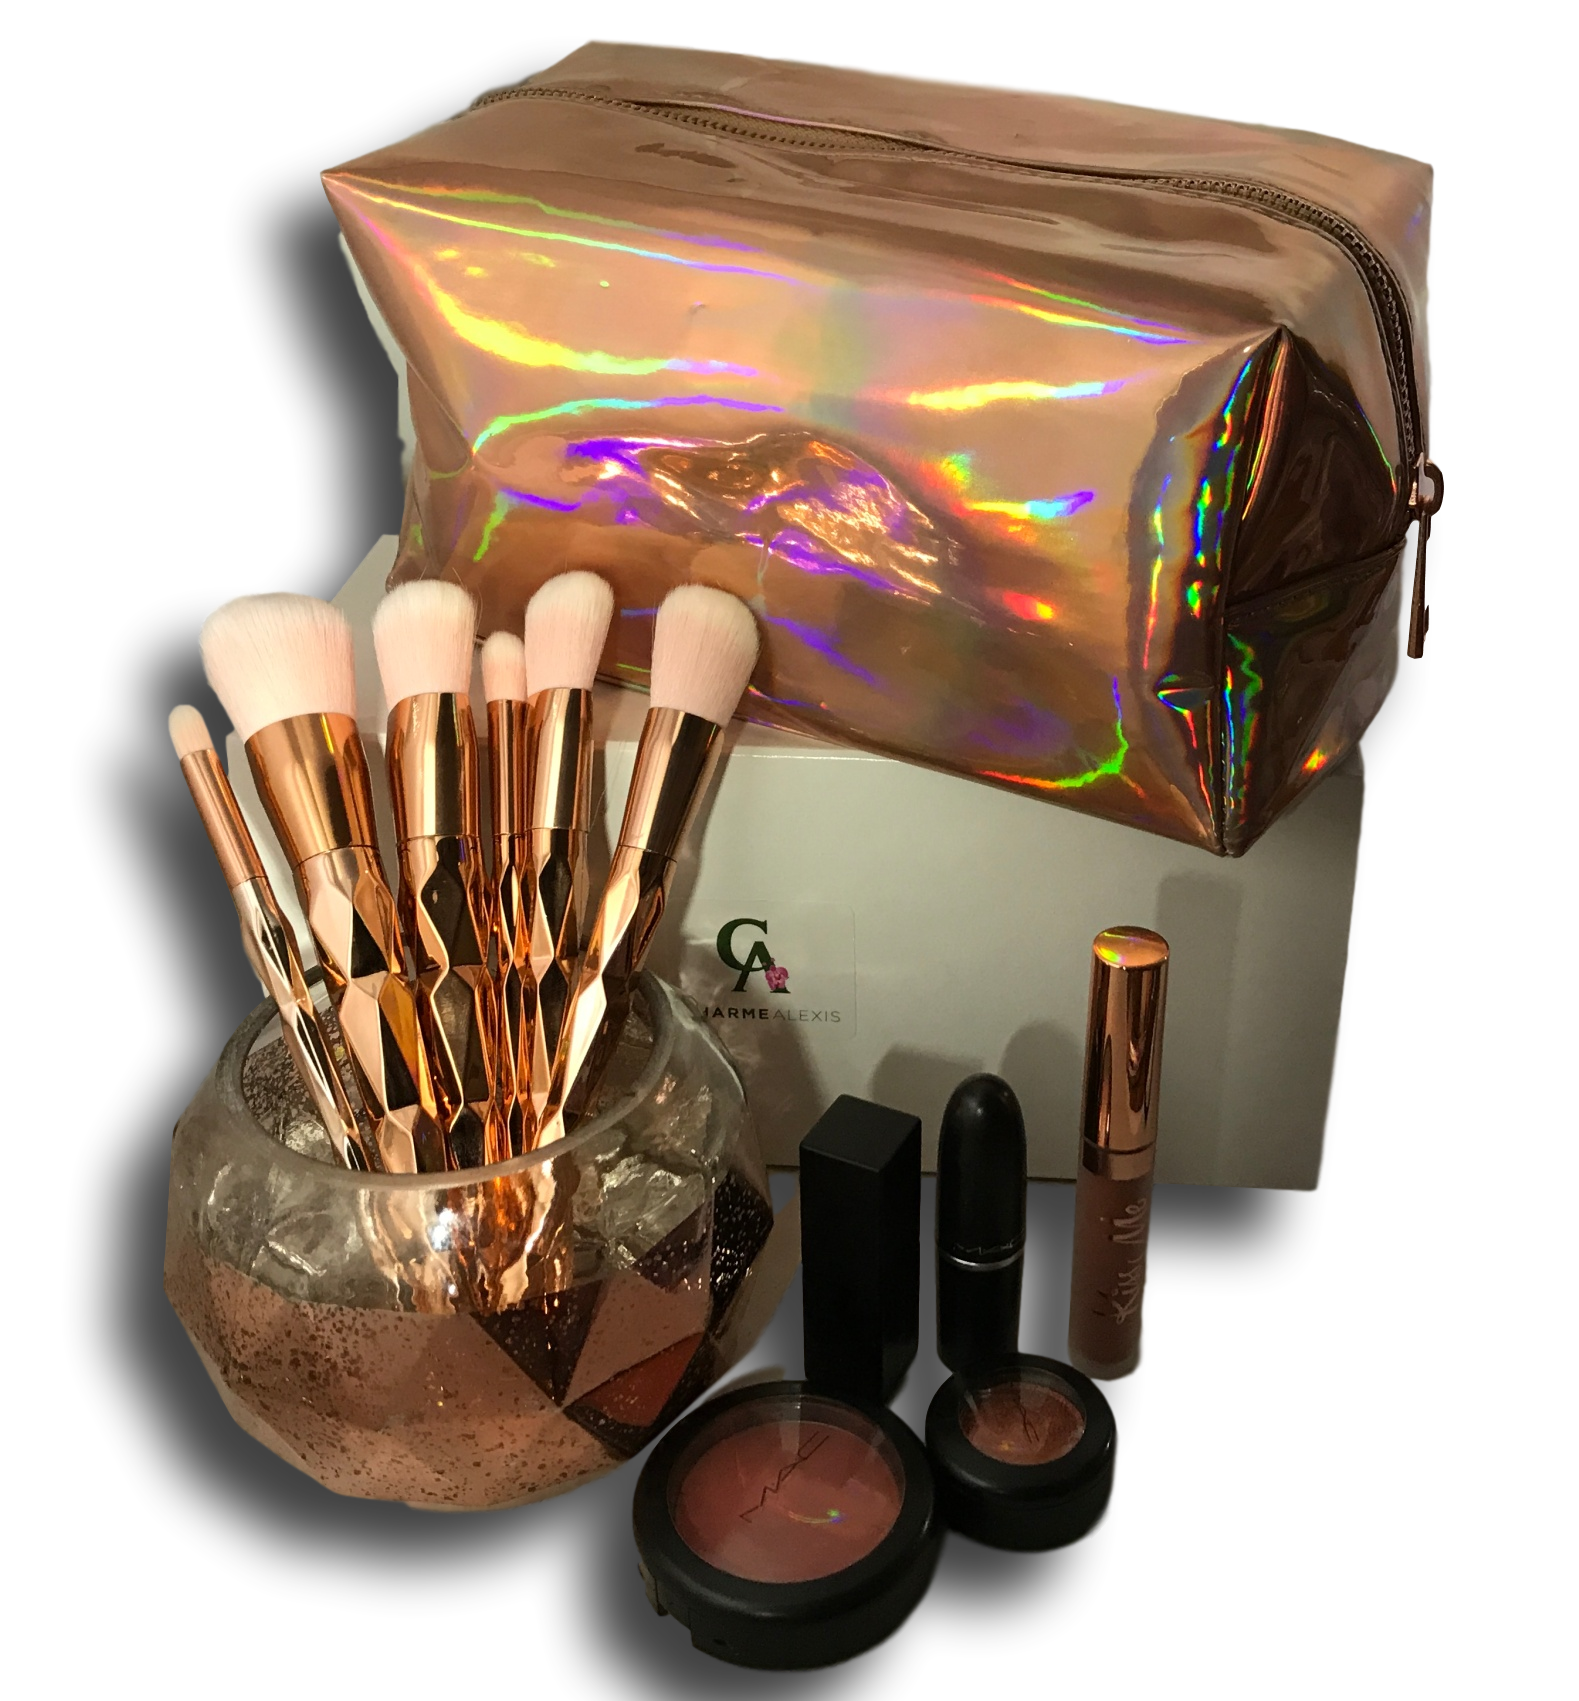 Stunning Holograph Makeup Bags are here! We had these bags